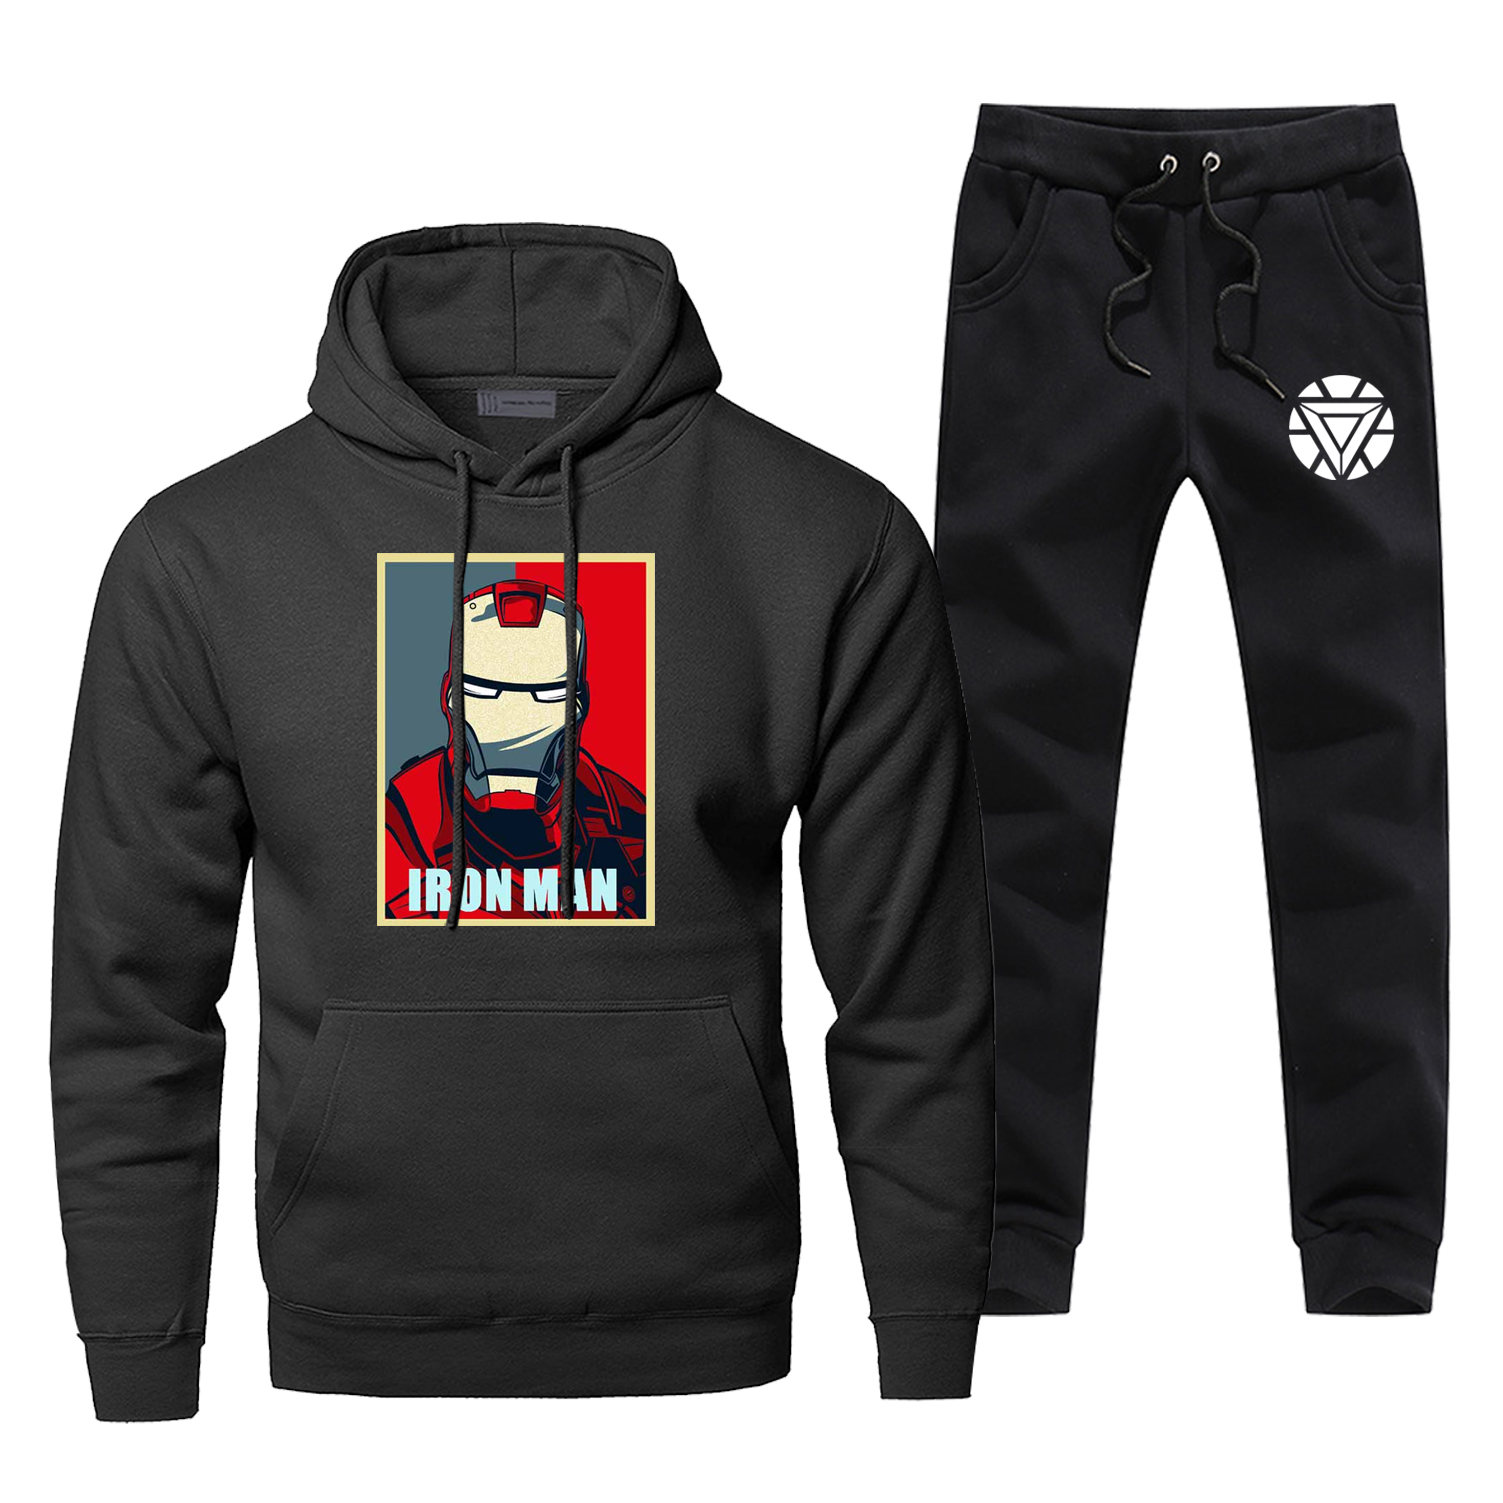 Iron Man Tony Stark The Avengers Hoodie Pants Set Men Sets Suit Sweatshirt Sweatpants Sportswear Autumn Pullover 2 PCS Tracksuit